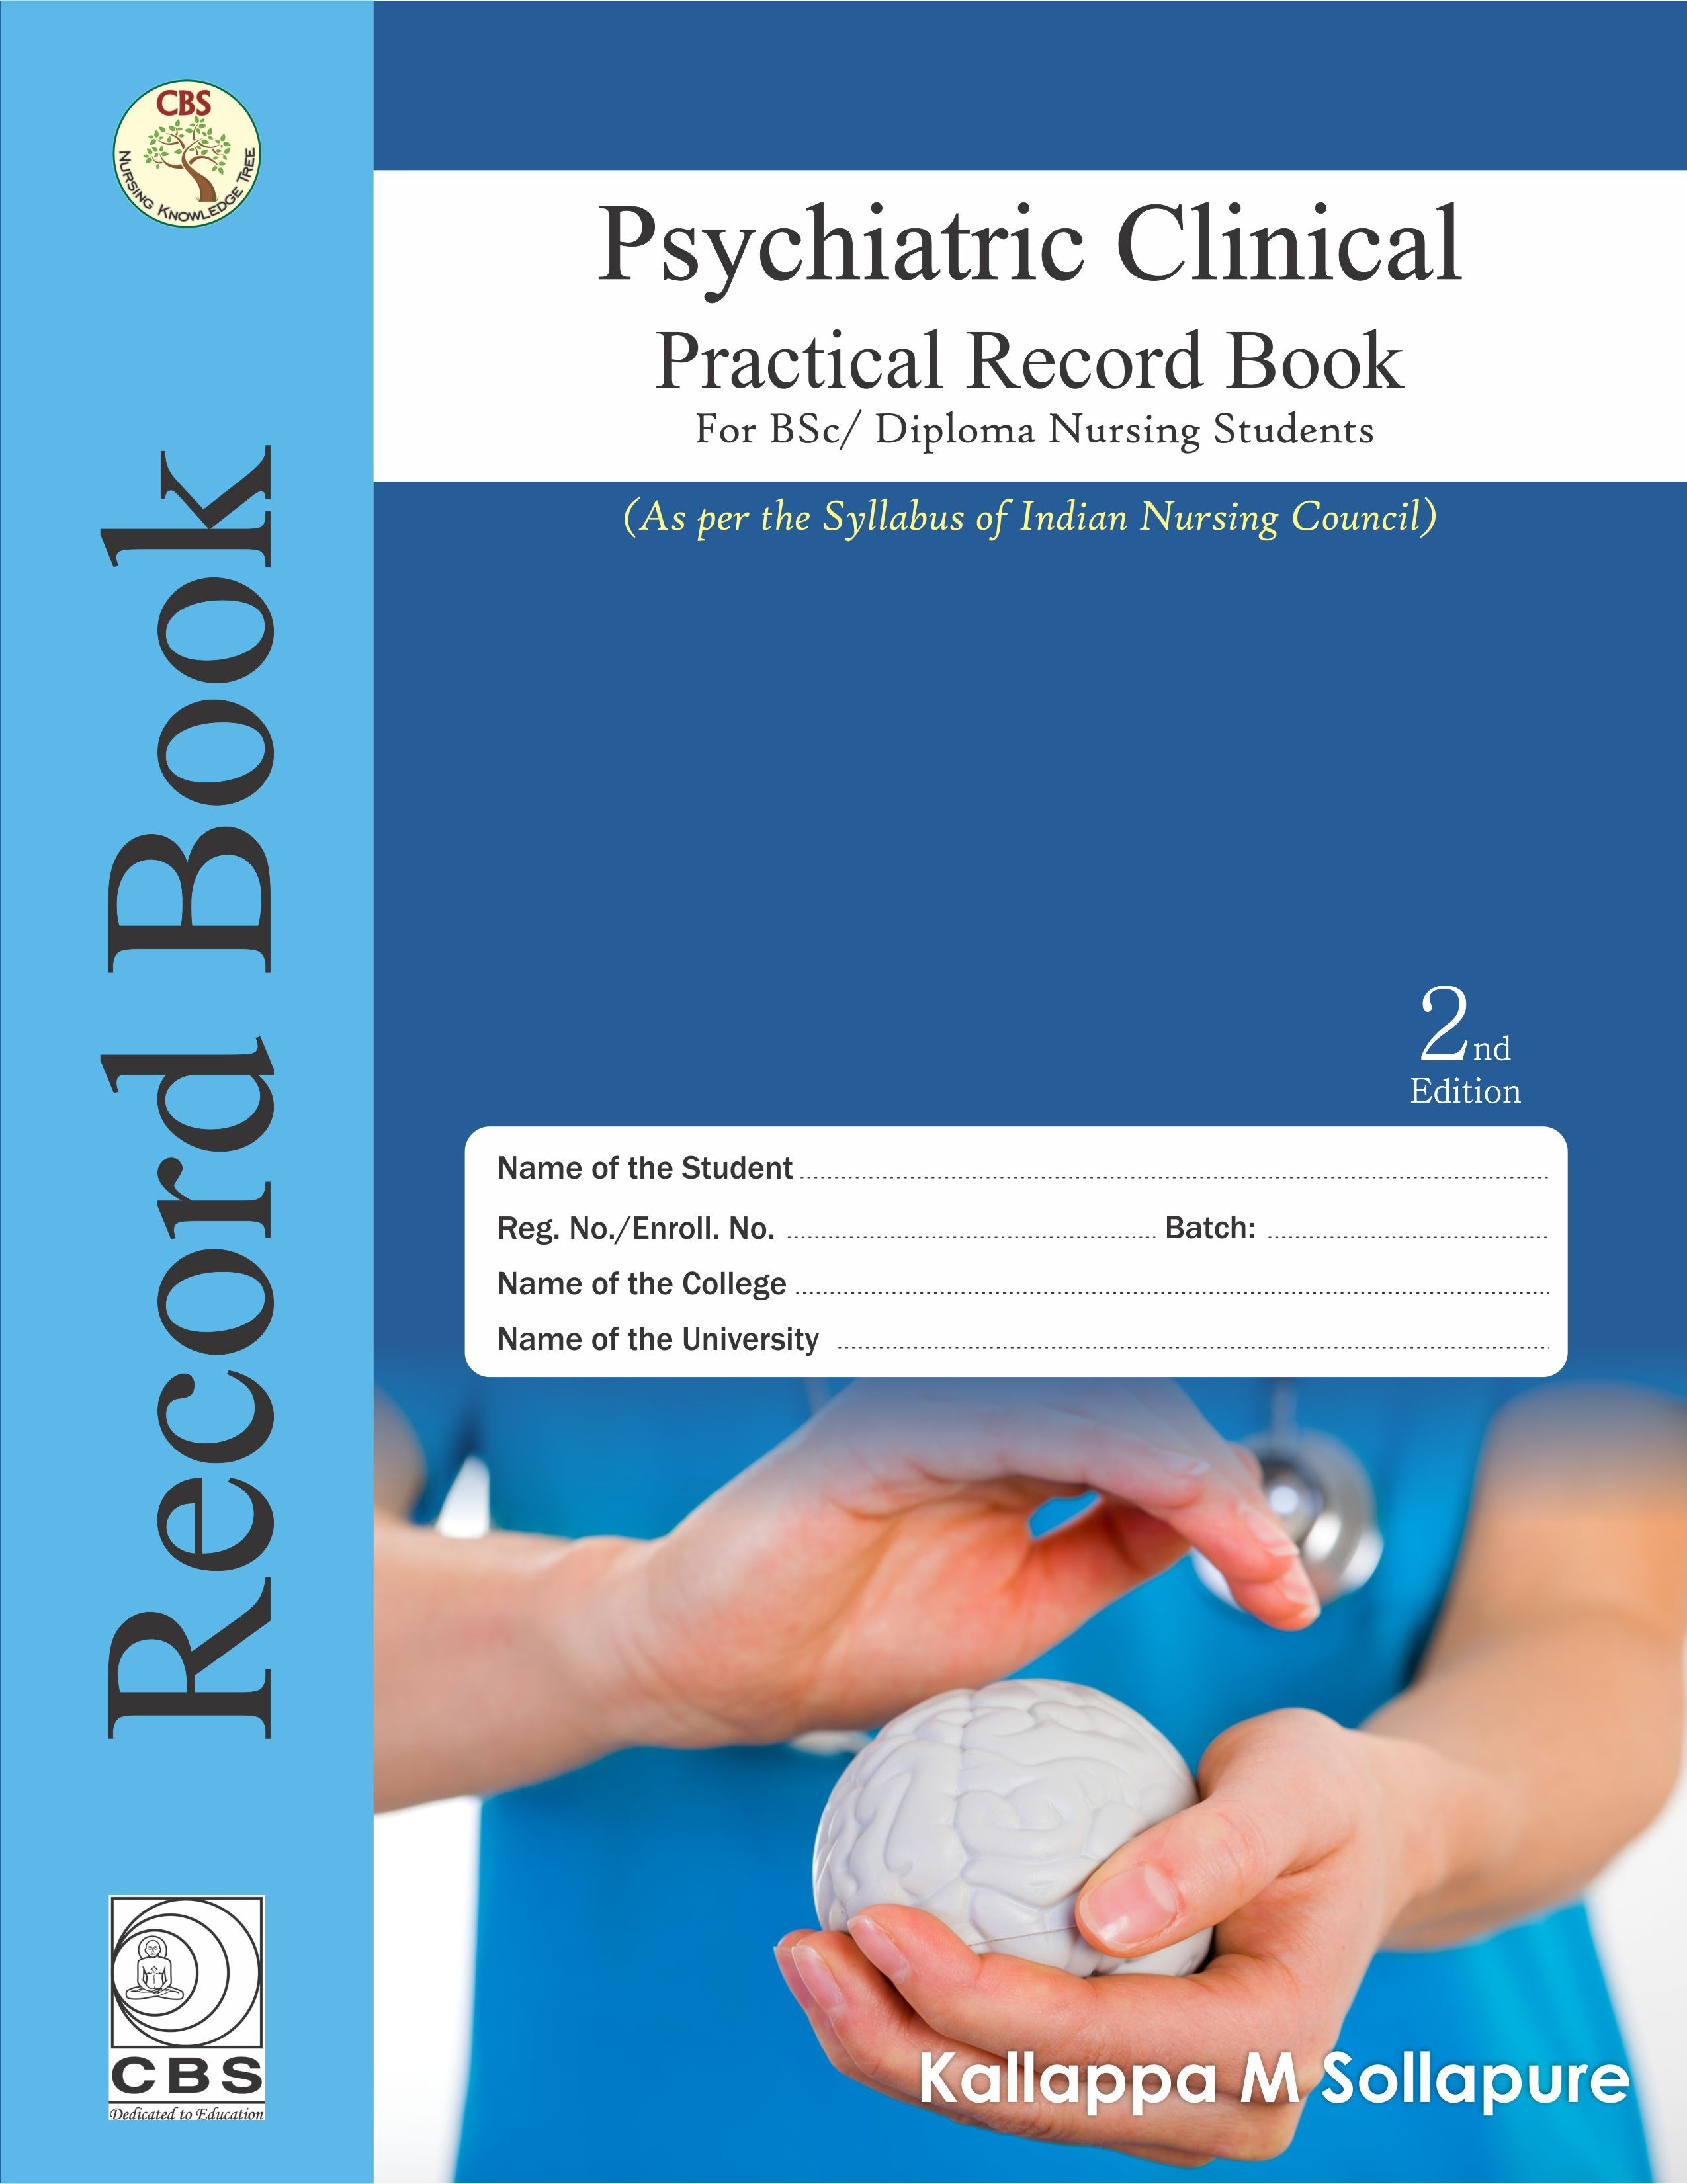 Psychiatric Clinical Practical Record Book for BSc/Diploma Nursing Students